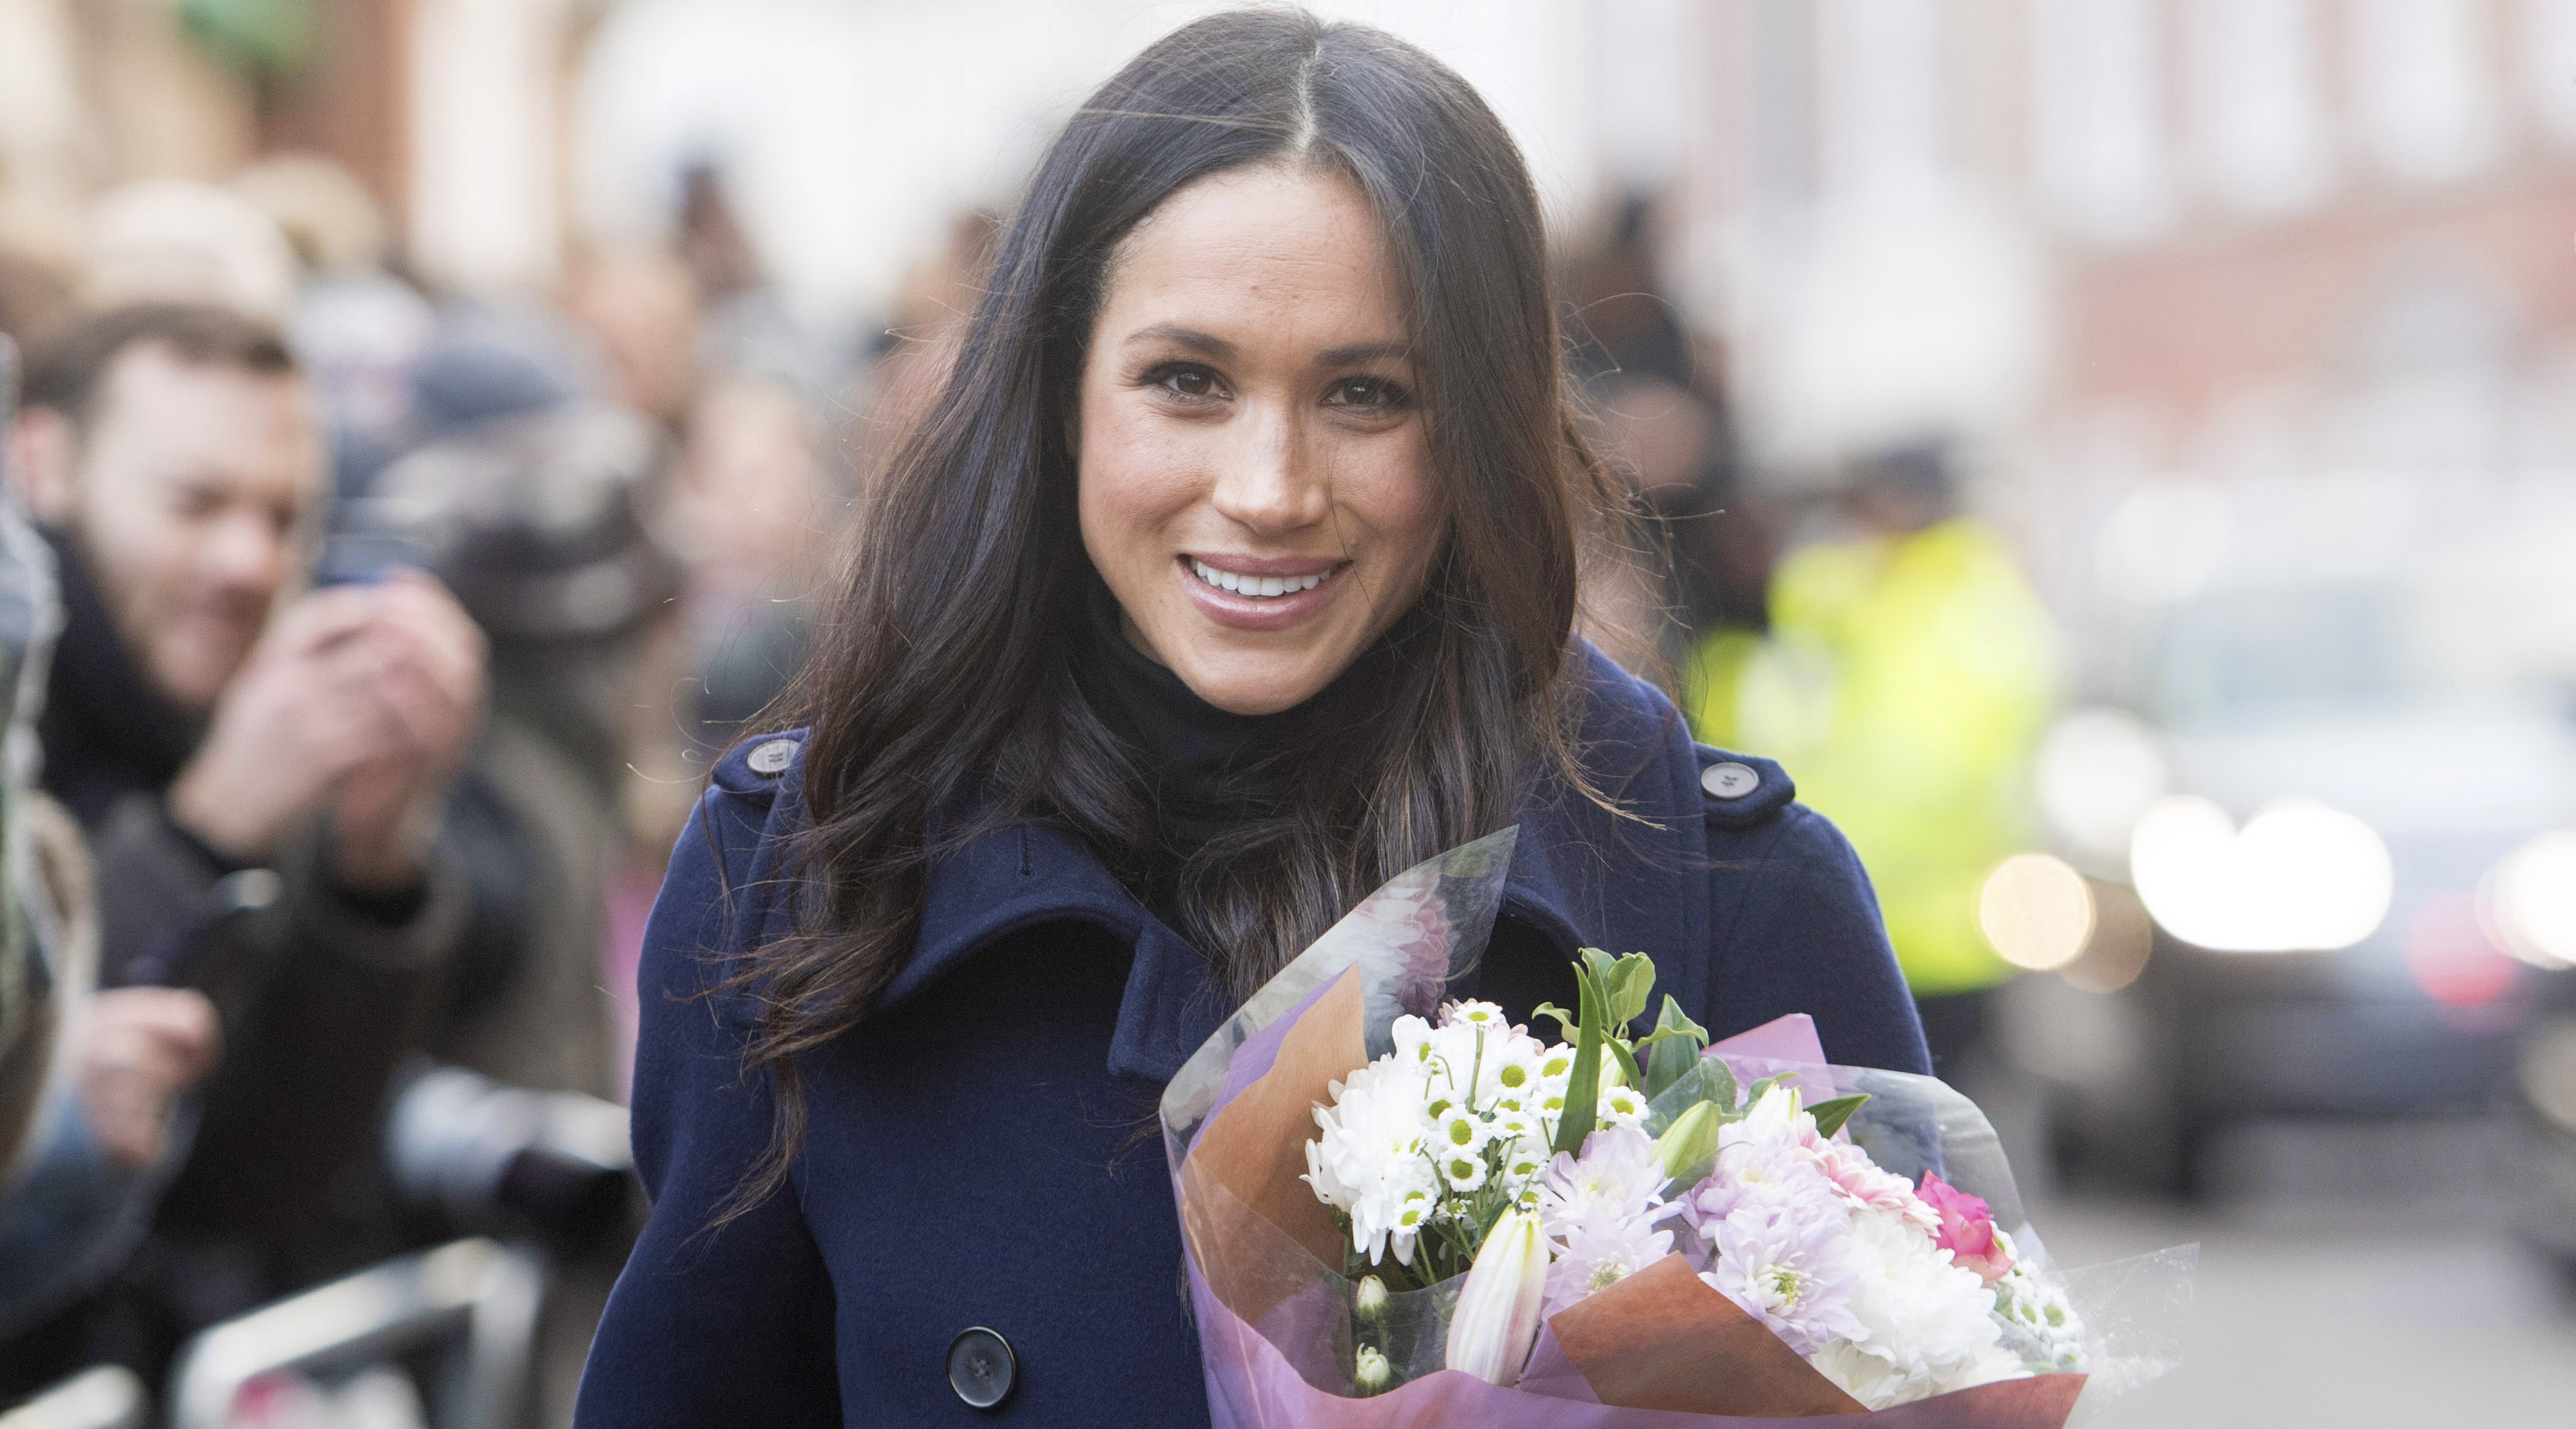 What Changing Religions Will Mean For Meghan Markle And Her Family